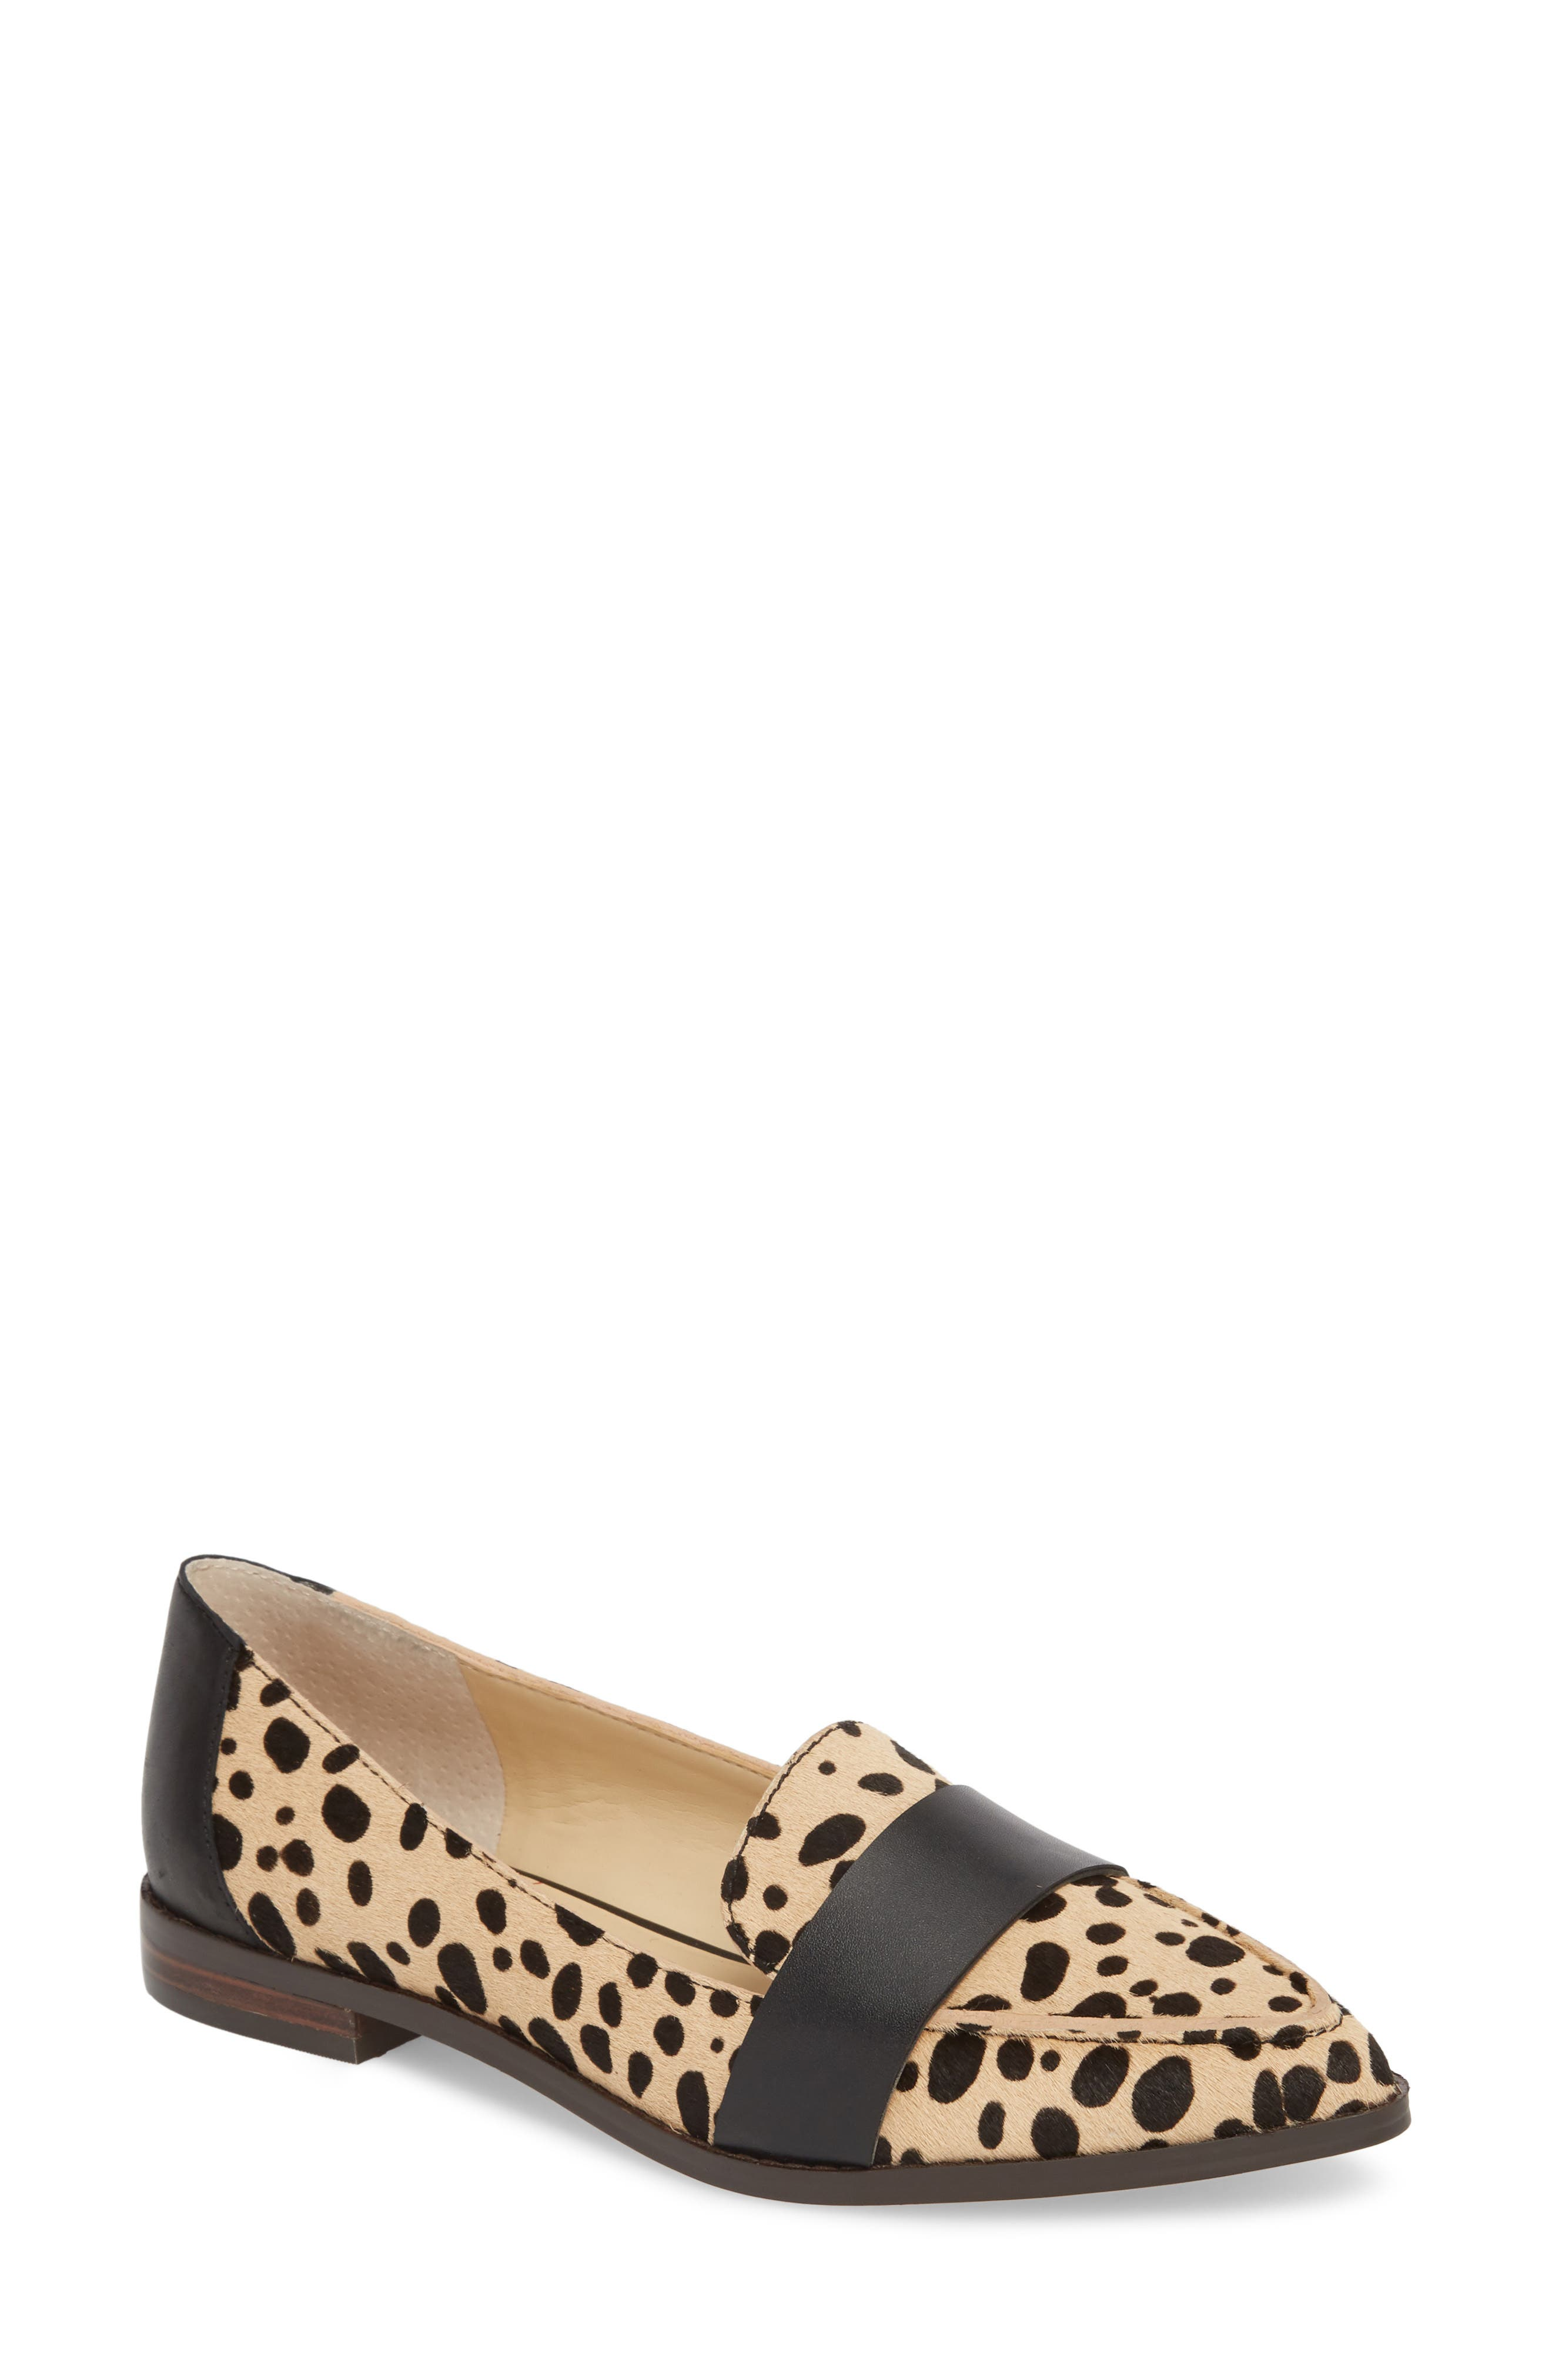 Edie Pointy Toe Loafer,                         Main,                         color, TAN/ BLACK DOT